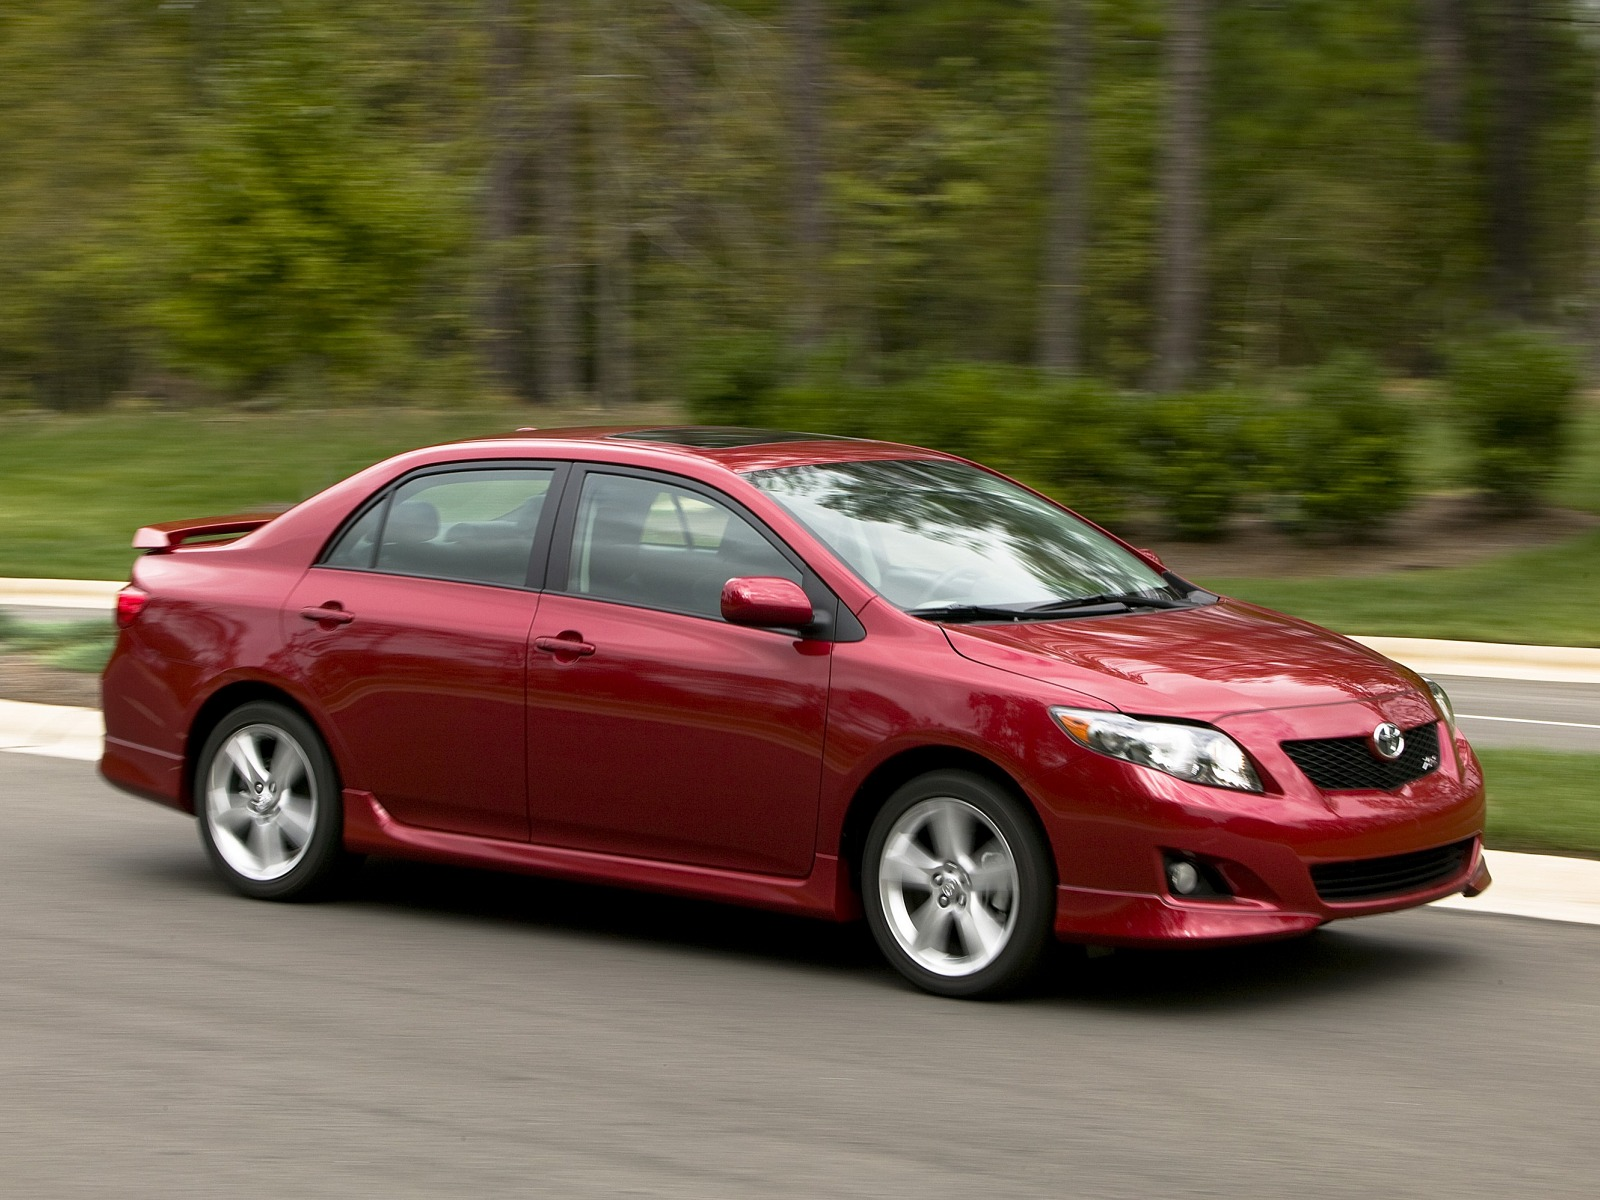 2009 toyota corolla xrs wallpapers pictures specifications interiors and exteriors images. Black Bedroom Furniture Sets. Home Design Ideas